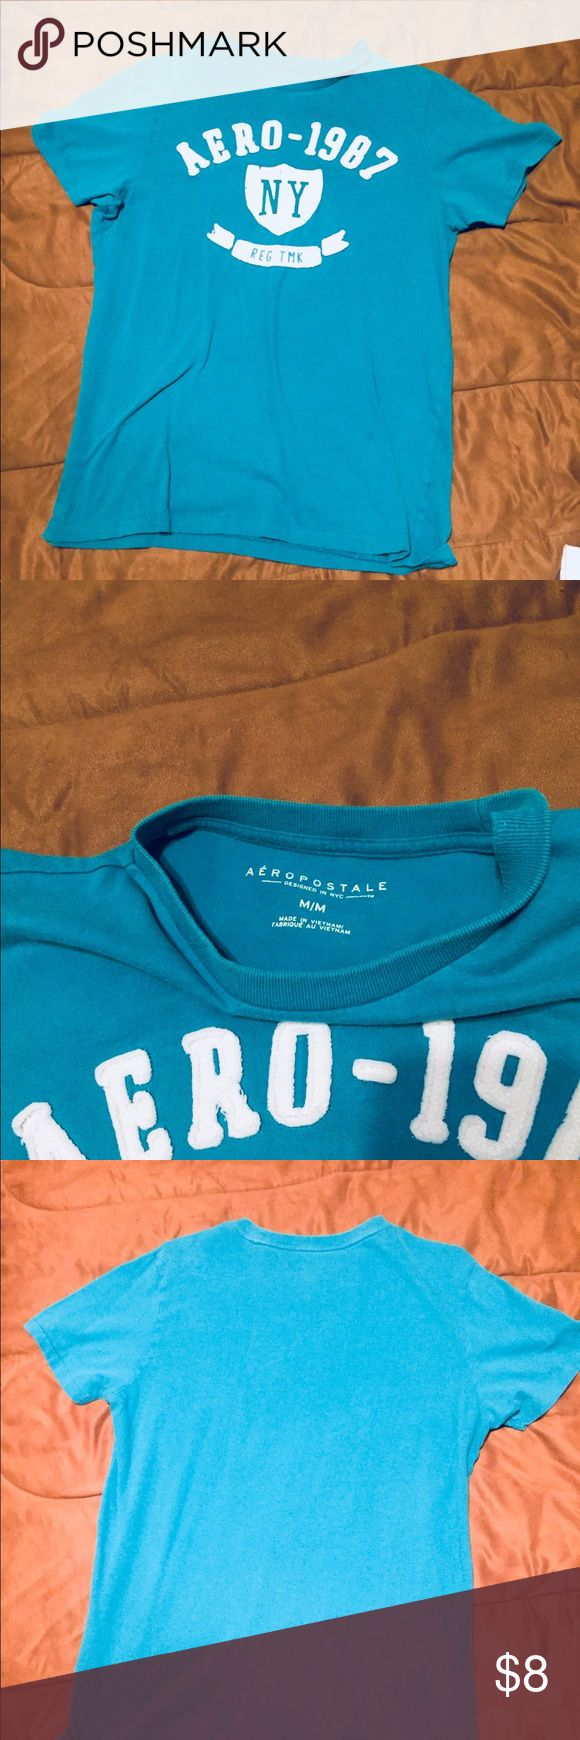 Men's Aero Medium T Shirt NWOT Men's Aeropostale Medium T Shirt - Turquoise Aeropostale Shirts Tees - Short Sleeve